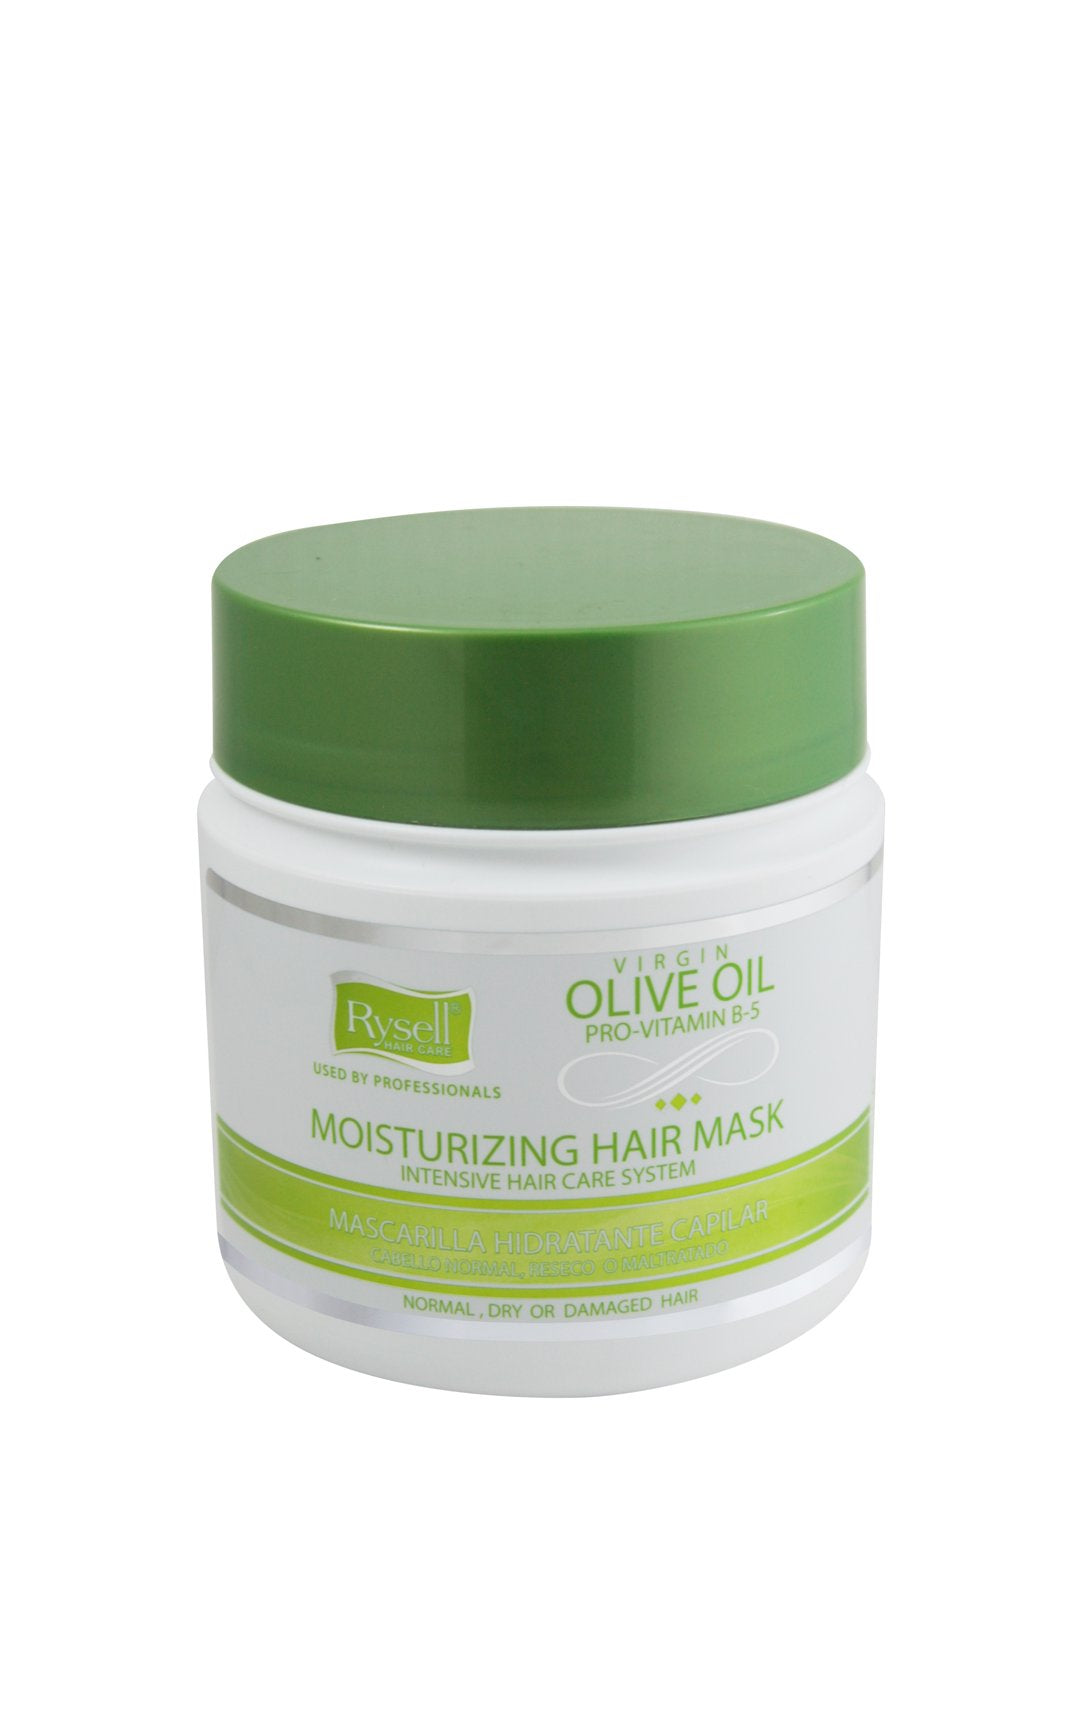 Virgin Olive Oil Hair Mask